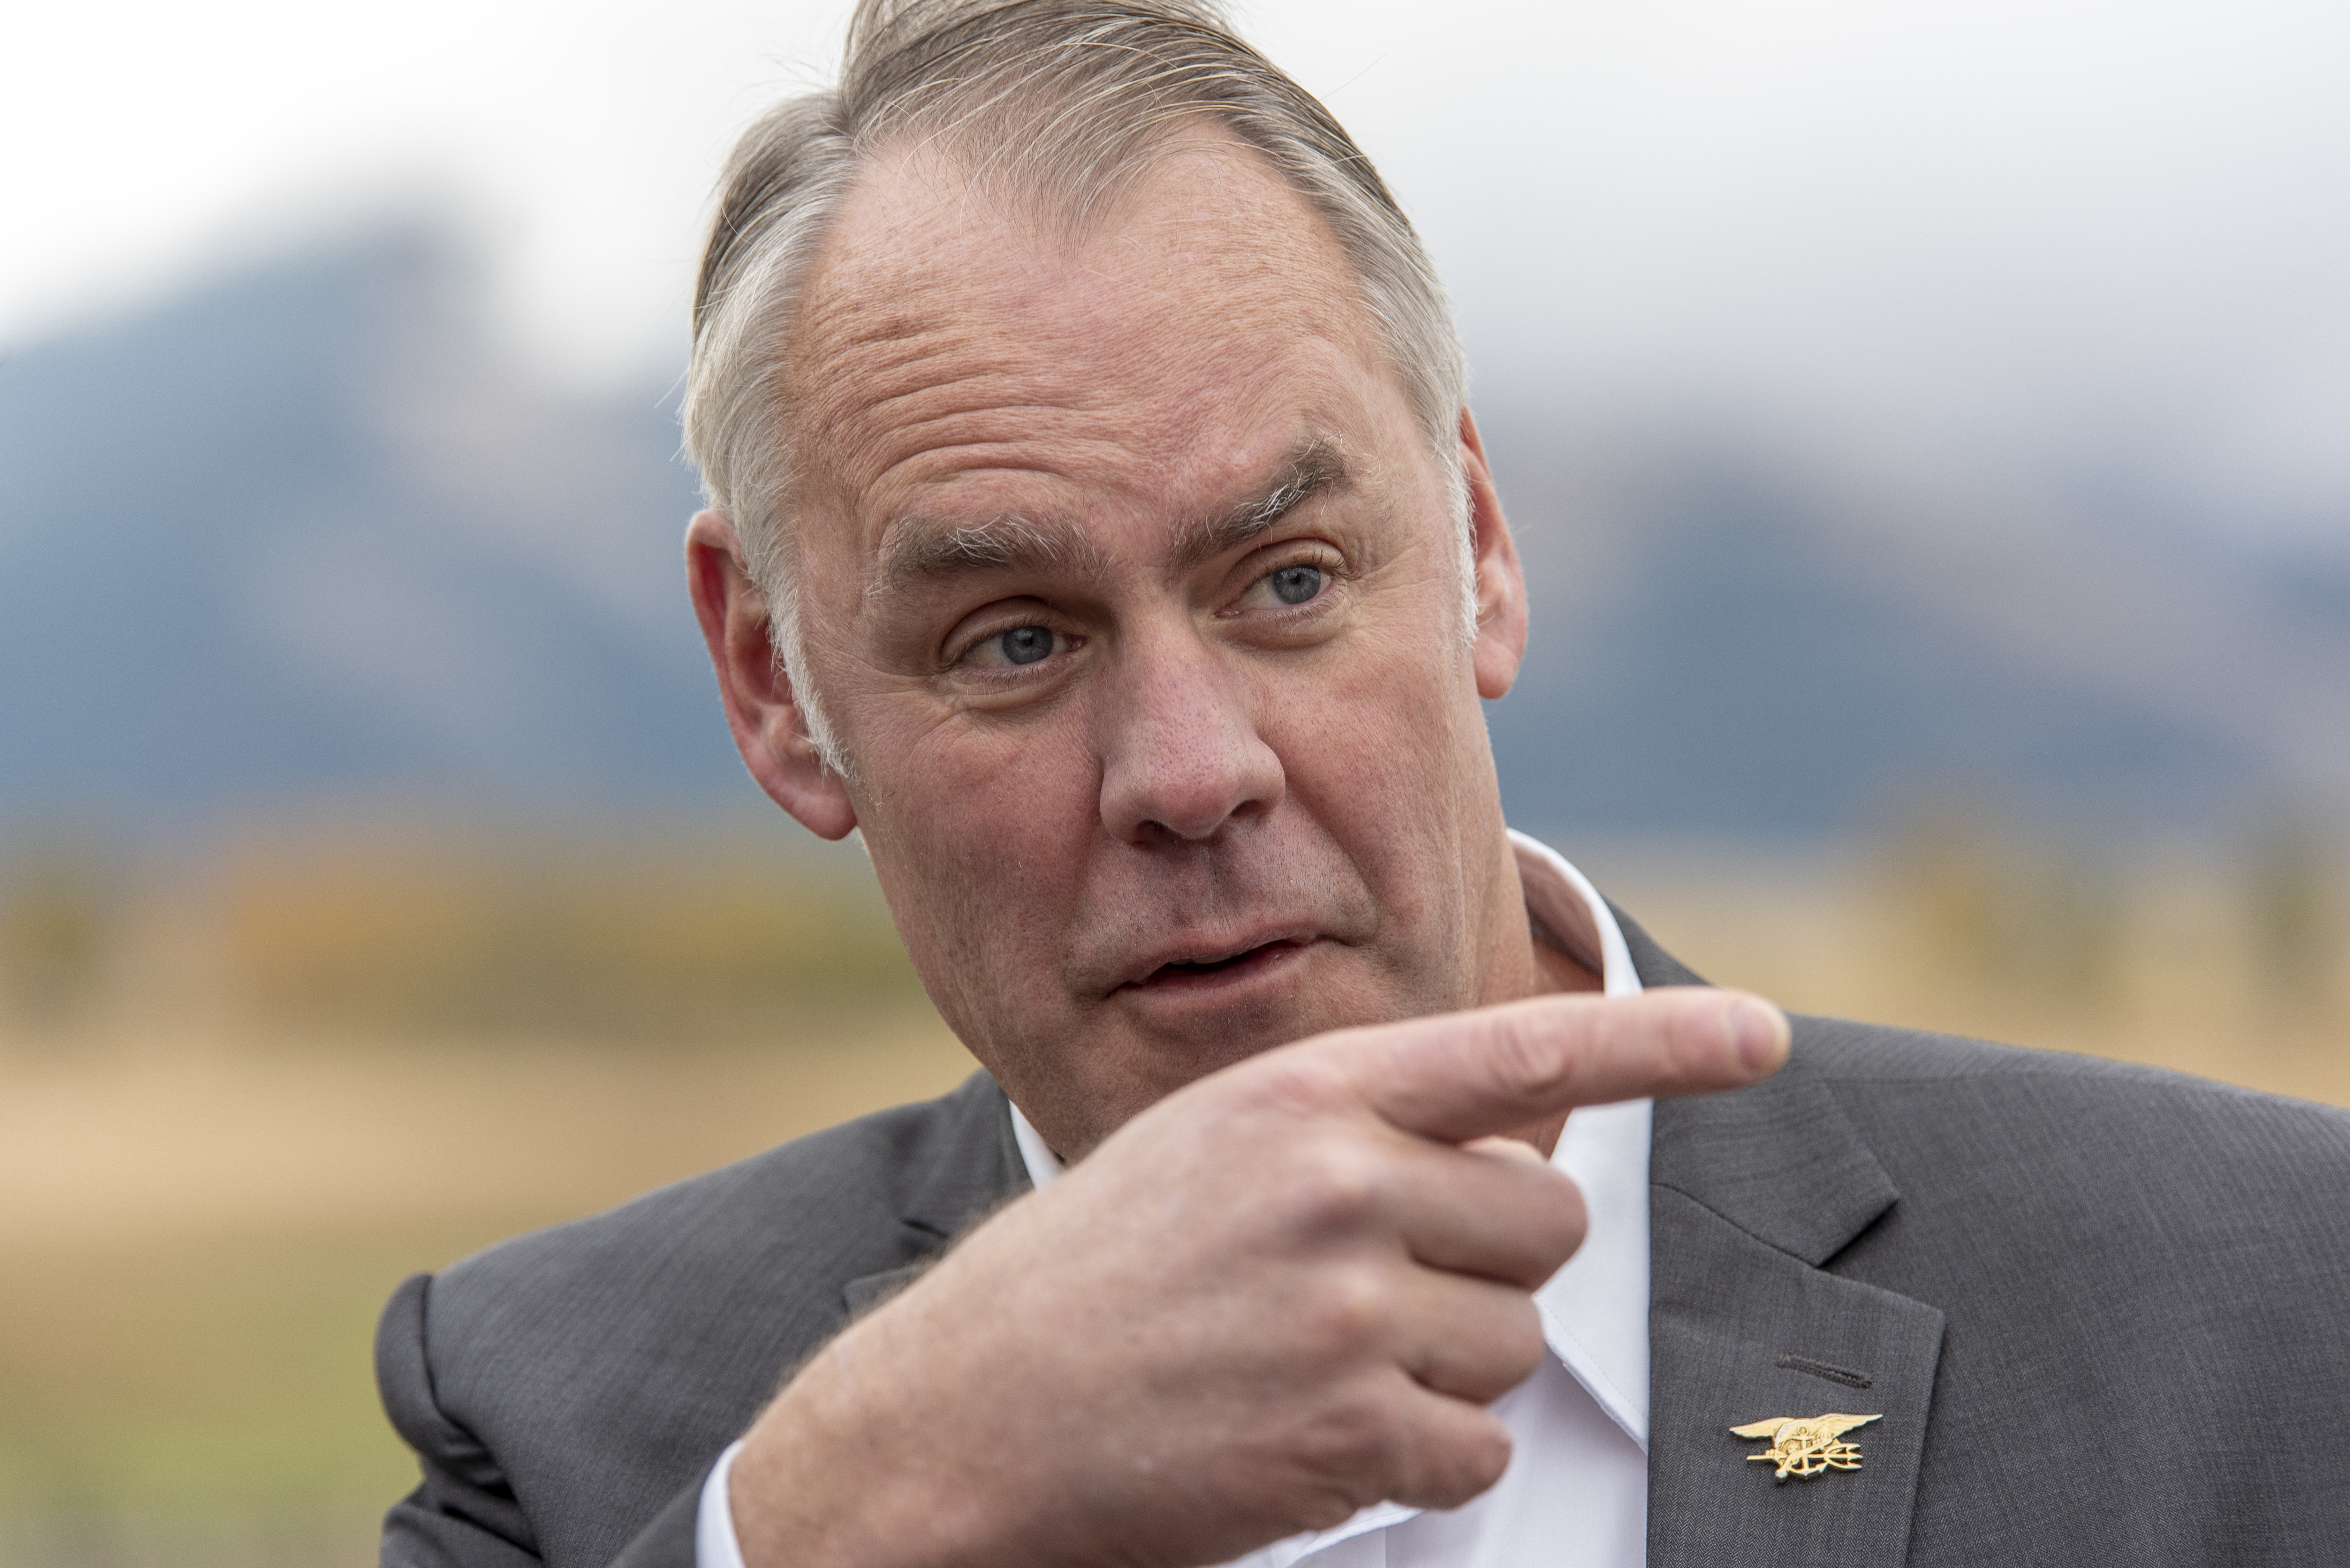 EMIGRANT,MT-OCTOBER, 08: Interior Secretary Ryan Zinke signs a Public Lands Order at a ceremony in Emigrant, MT on October 08, 2018. The Public Lands Order withdraws 30,000 acres of public land from hard rock mining surrounding two proposed gold mines north of Yellowstone National Park for 20 years. The gold mining is opposed by local businesses in Paradise Valley along the Yellowstone River just north of Yellowstone National Park. (Photo by William Campbell-Corbis via Getty Images)